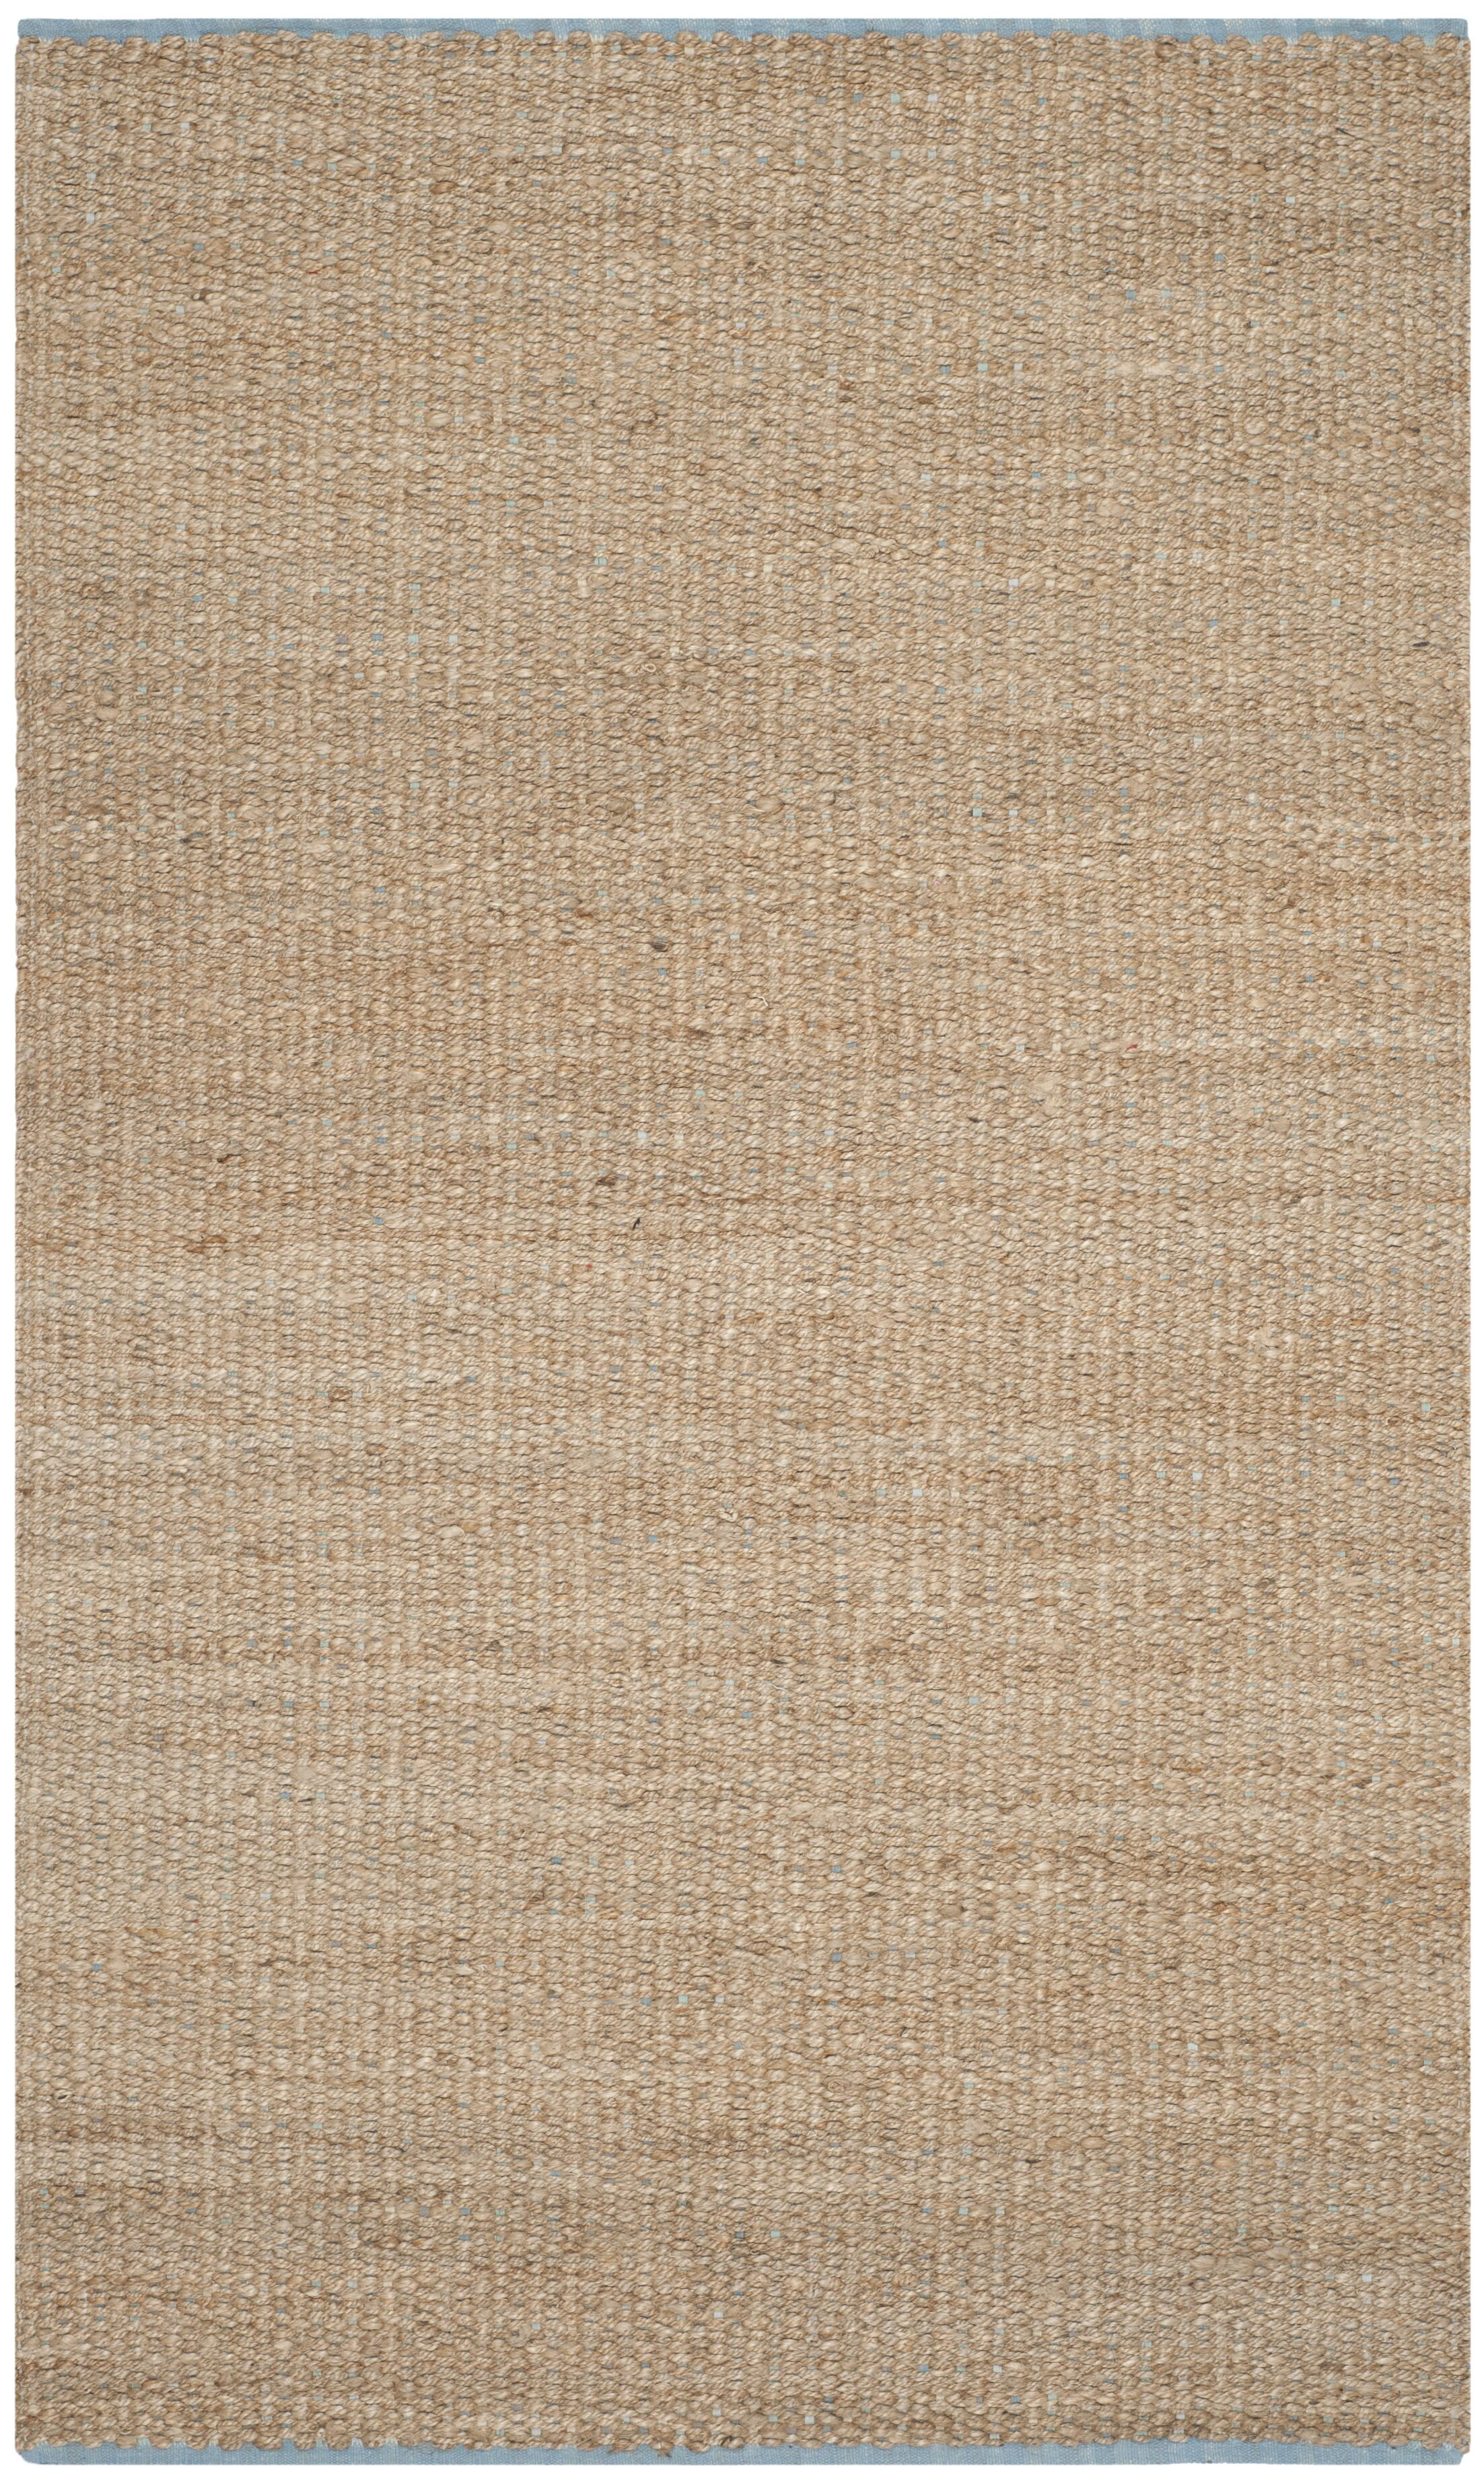 Elston Hand-Woven Light Beige/Natural Area Rug Rug Size: Rectangle 5' x 8'